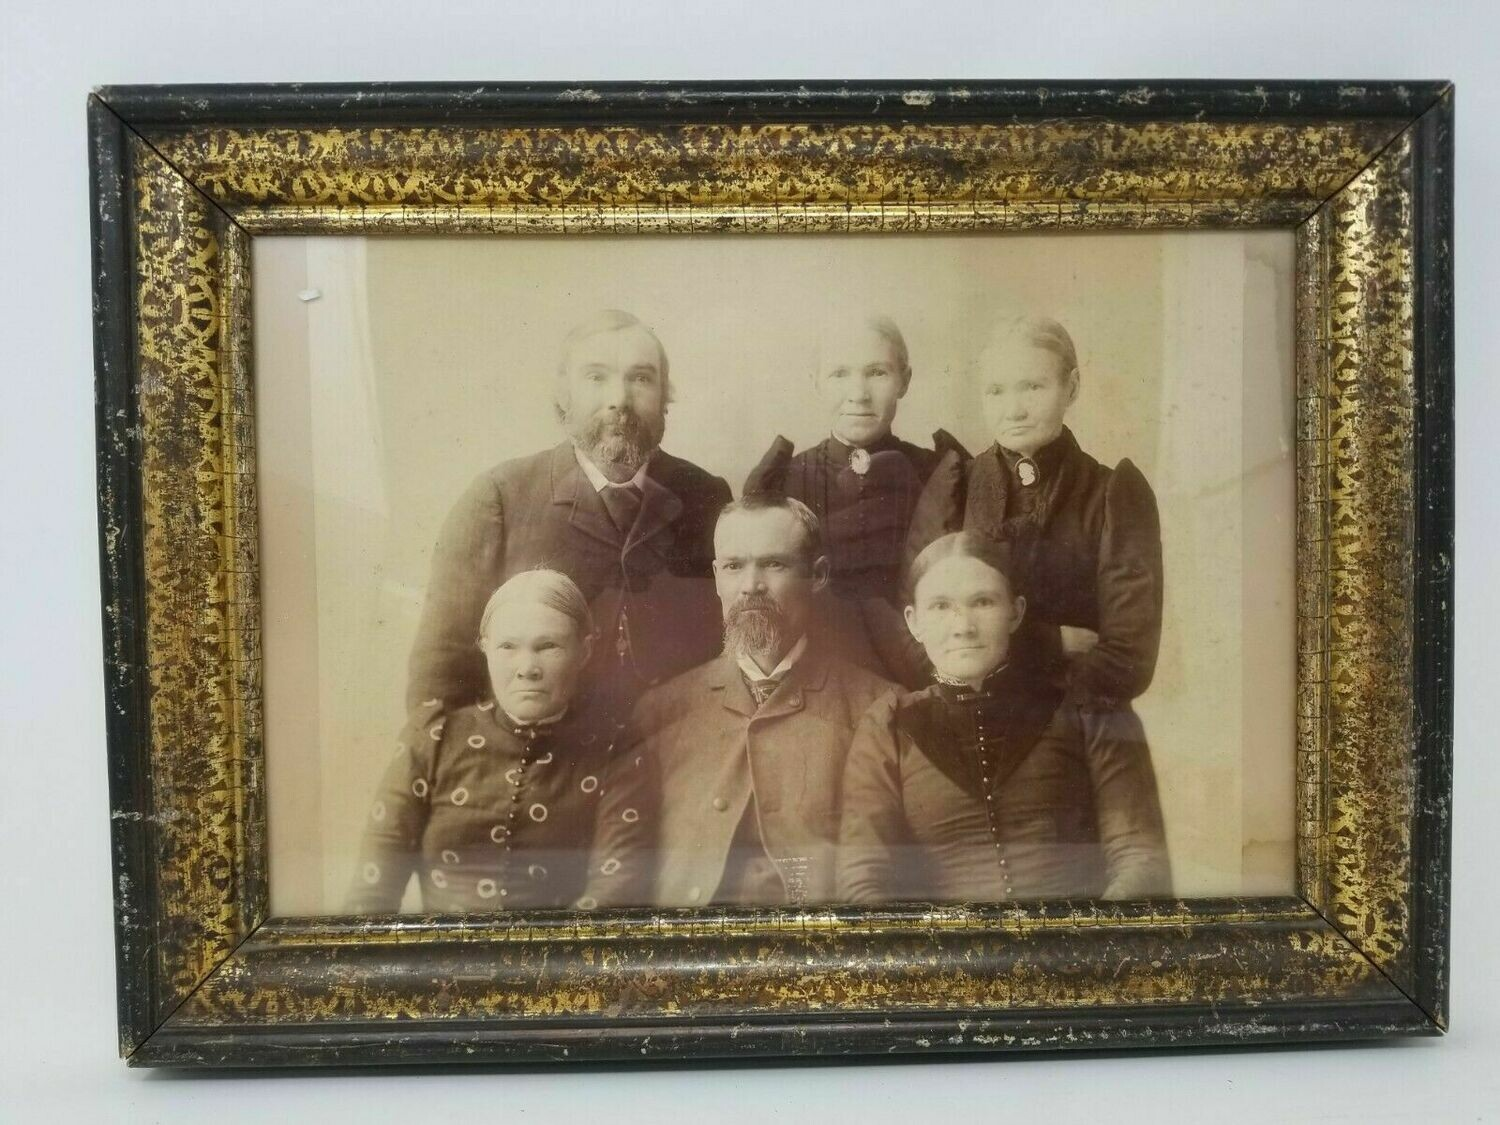 Antique Framed Victorian Family Portrait Sepia Sisters Brothers Illusion 1800s